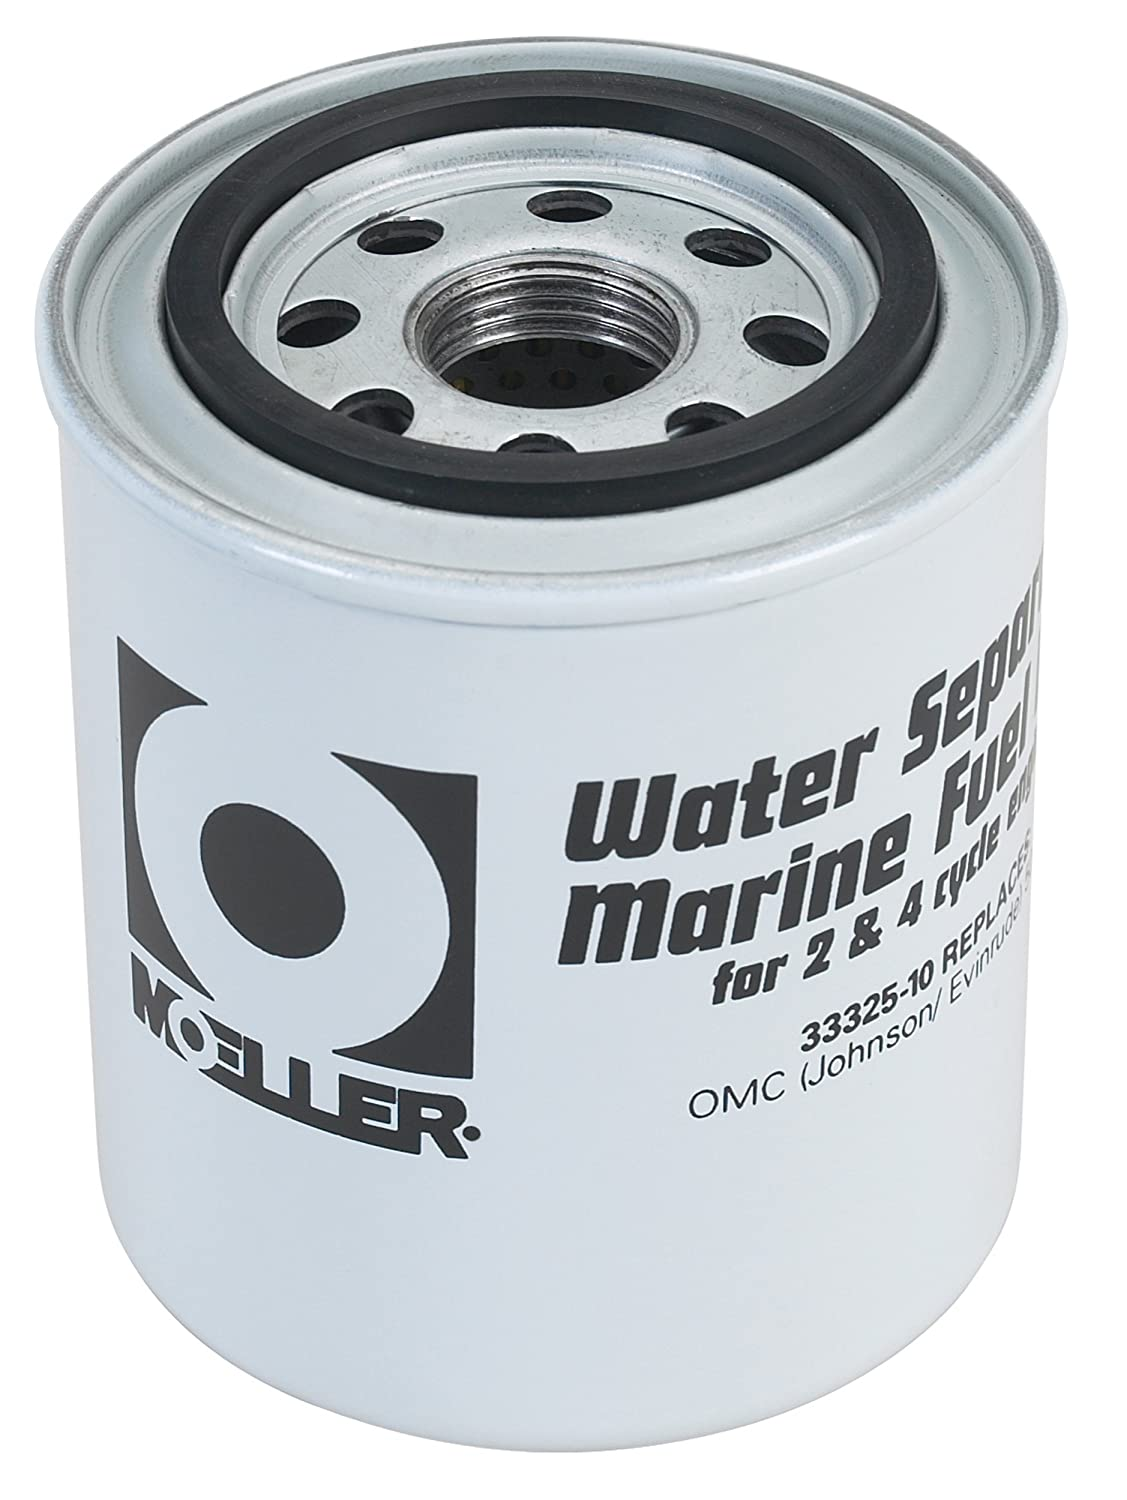 poulan pro fuel filter moeller water separating fuel filter (johnson/evinrude ... #7